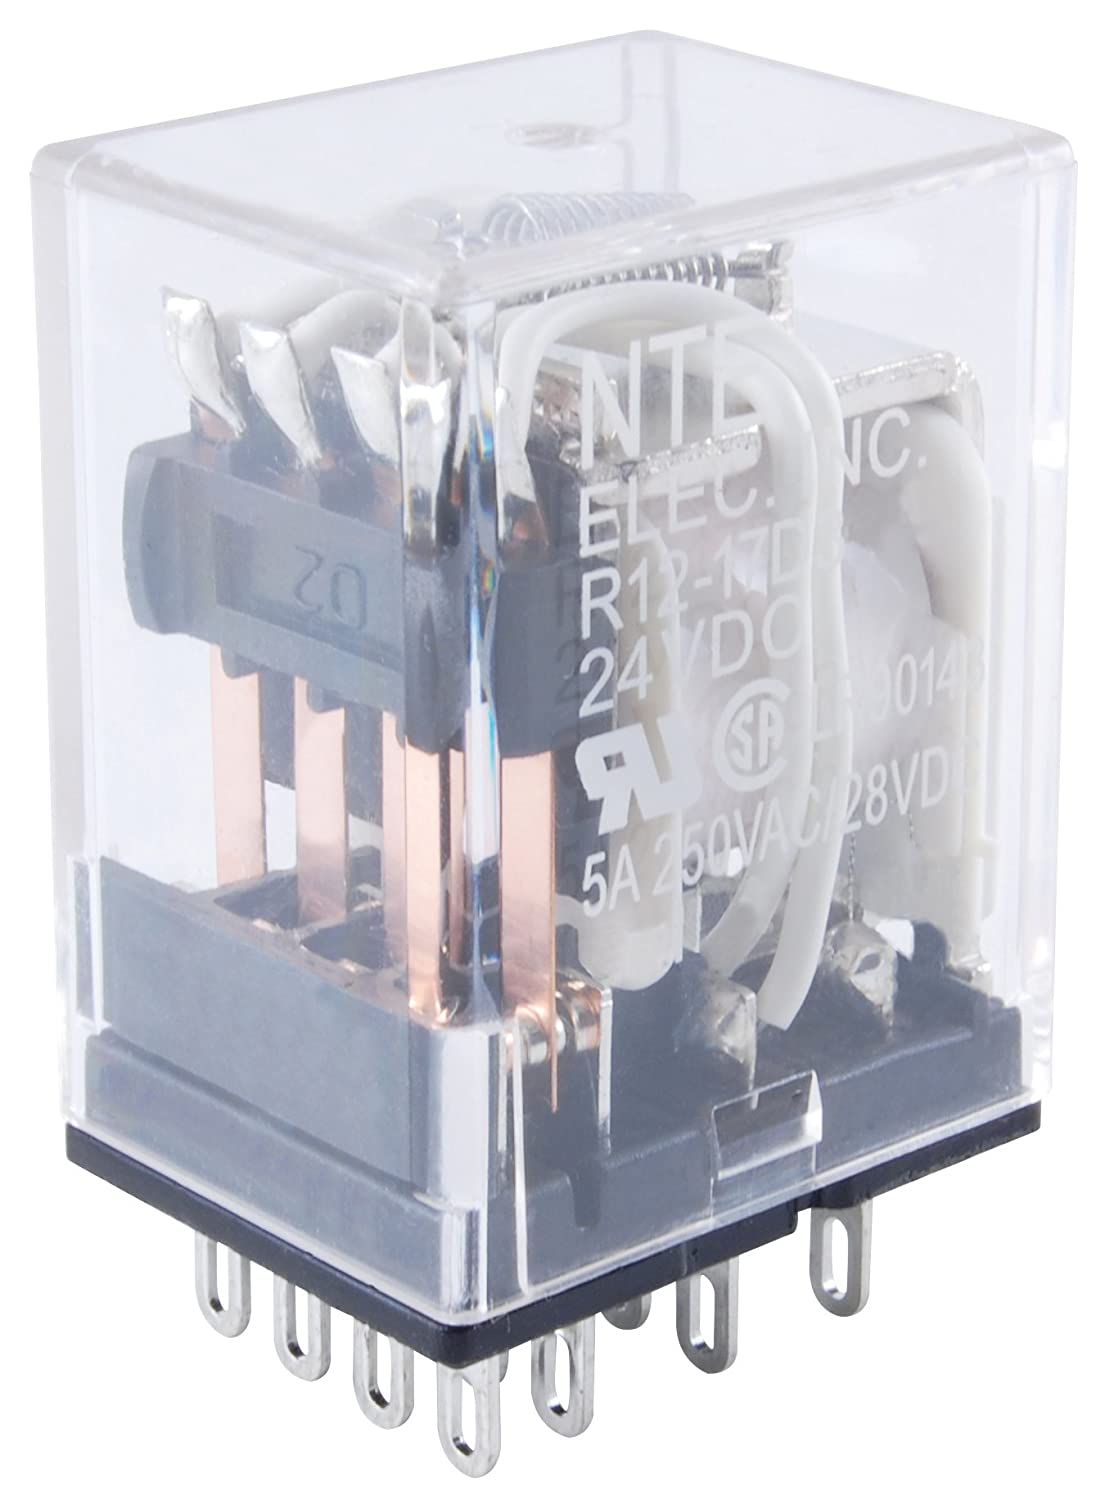 5 Amp NTE Electronics R12-14A5-24 Series R12 General Purpose AC Relay 24 VAC 3PDT Contact Arrangement